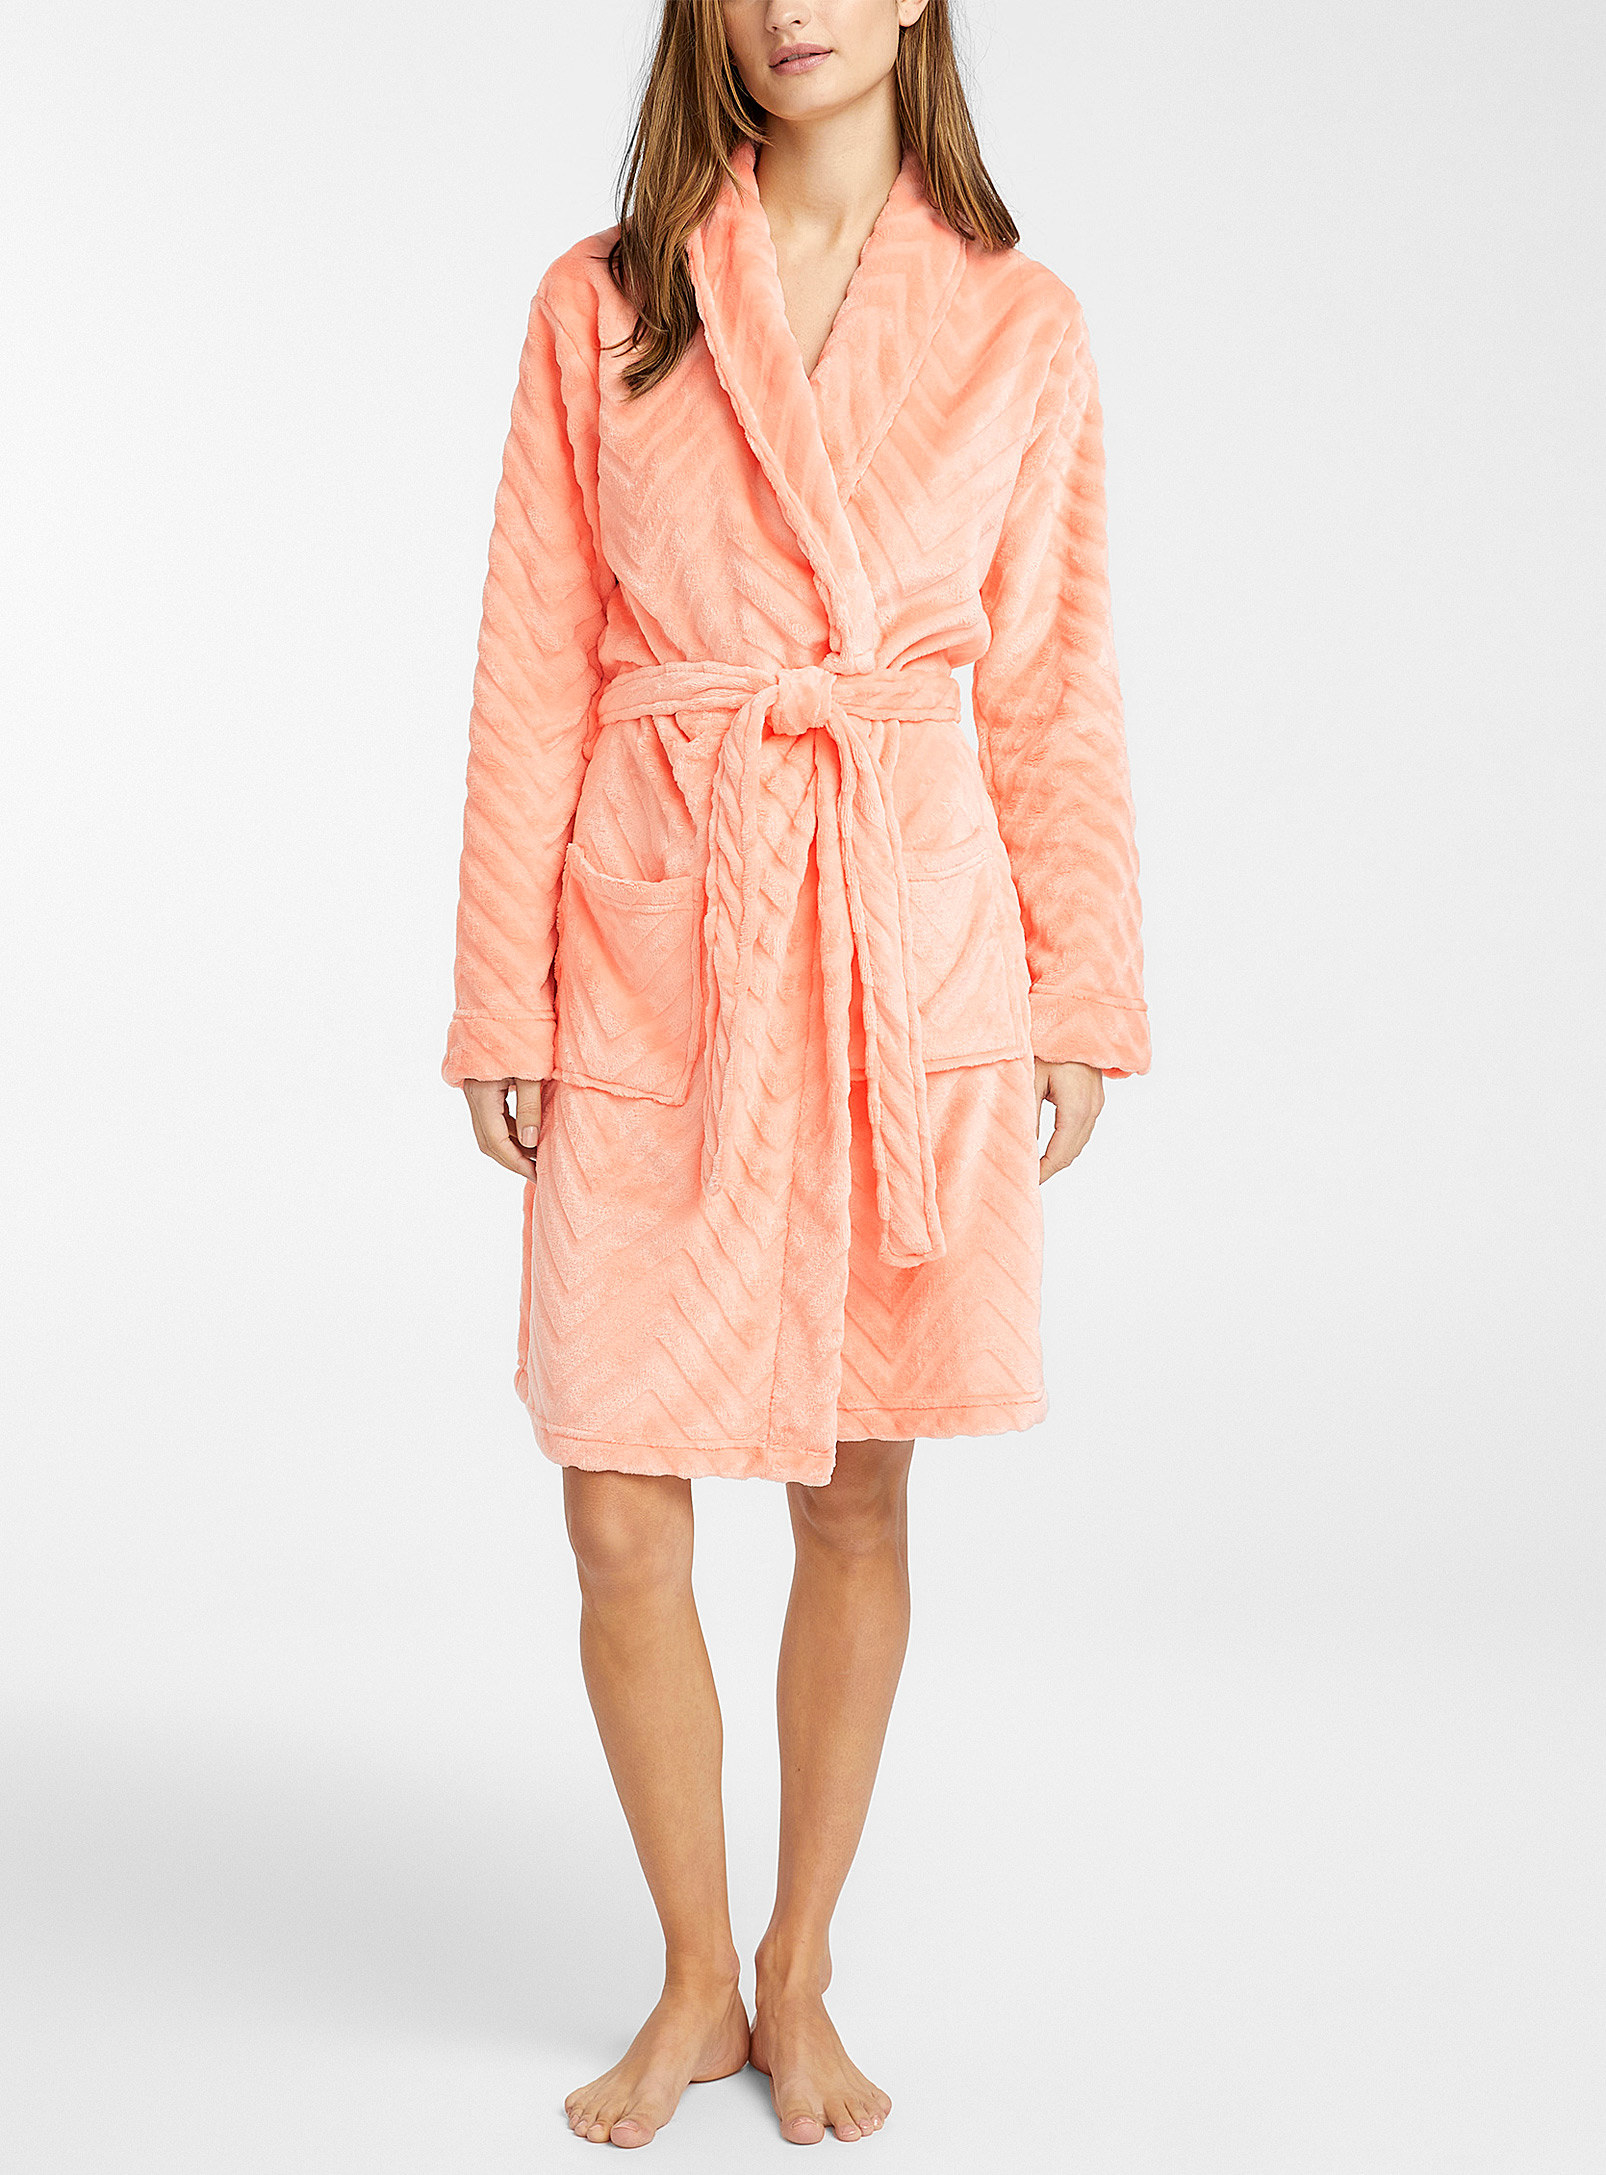 person standing in the bathrobe